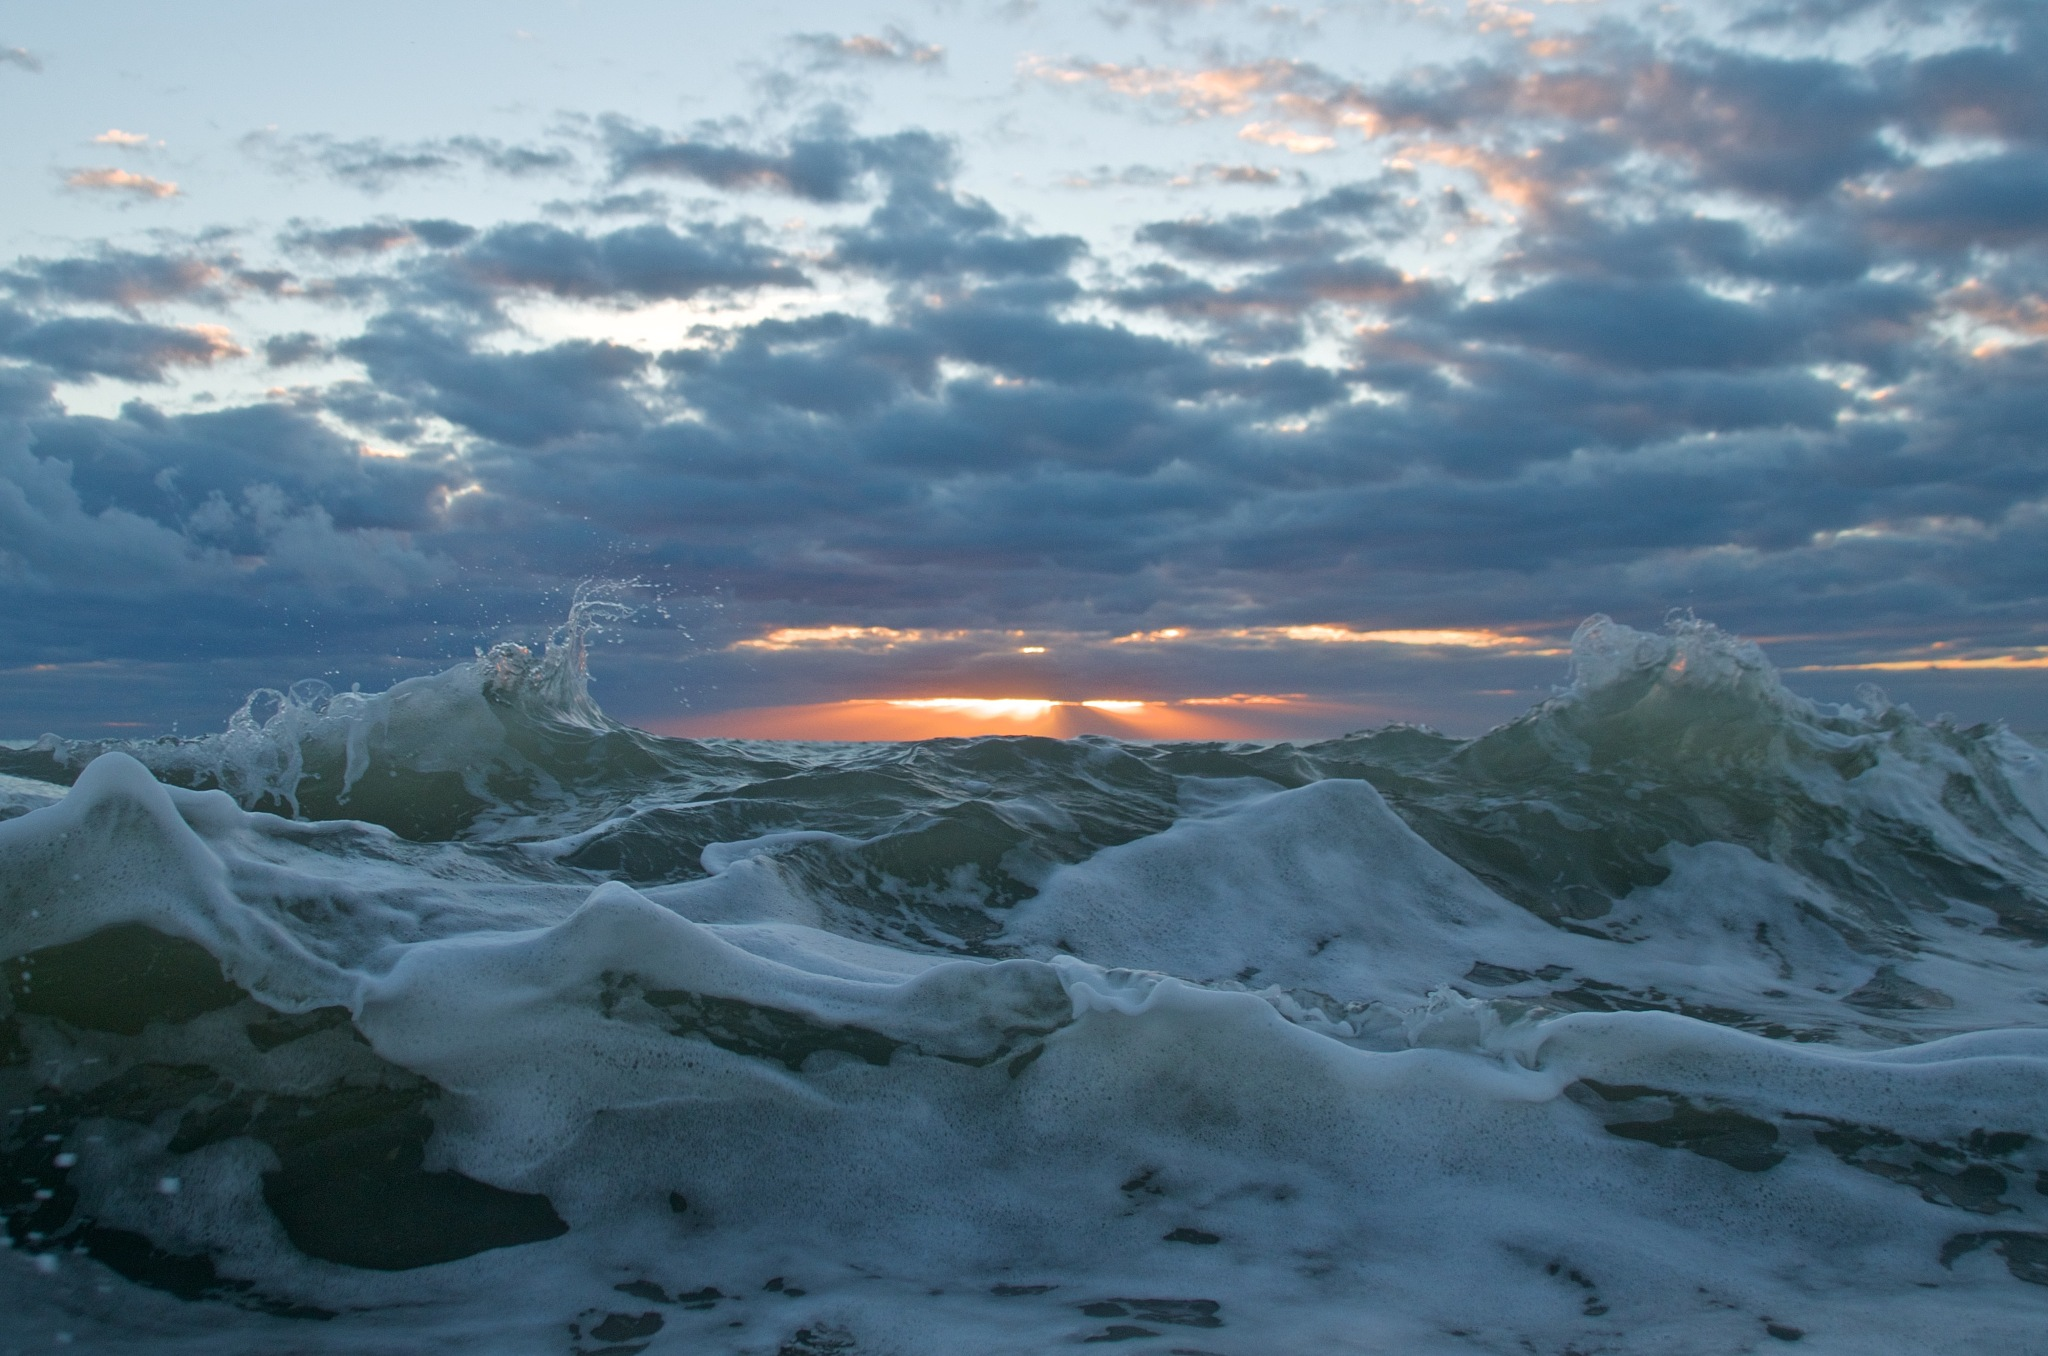 Sunrise with Mountain Looking Waves by tracey.kurilla